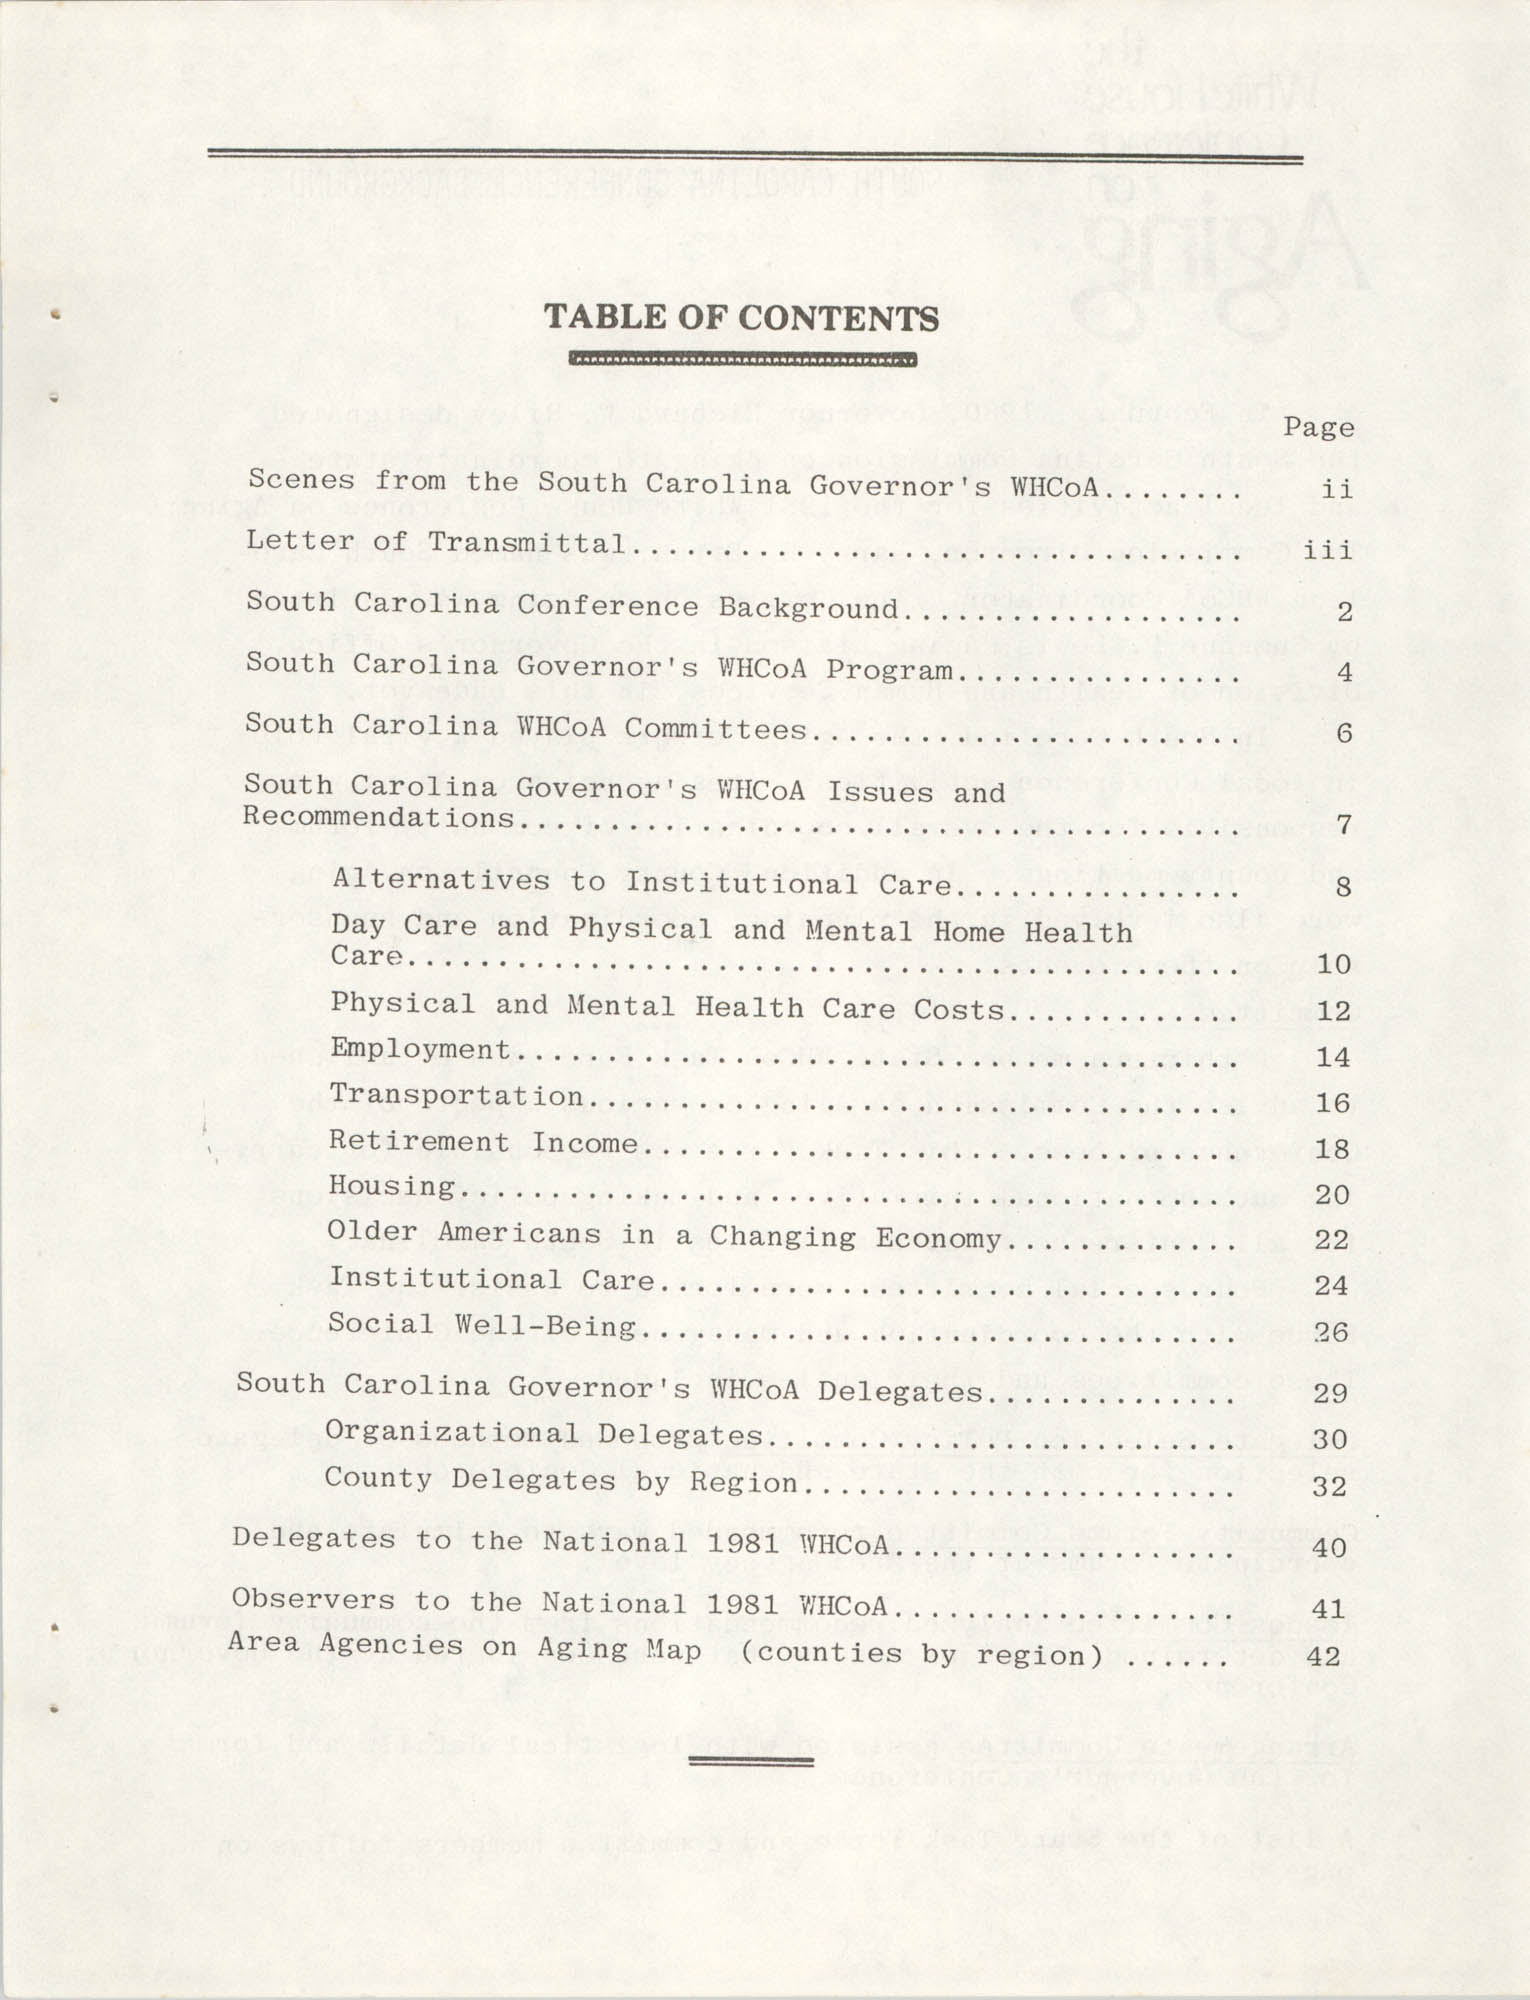 South Carolina Governor's White House Conference on Aging Proceedings, 1981, Table of Contents